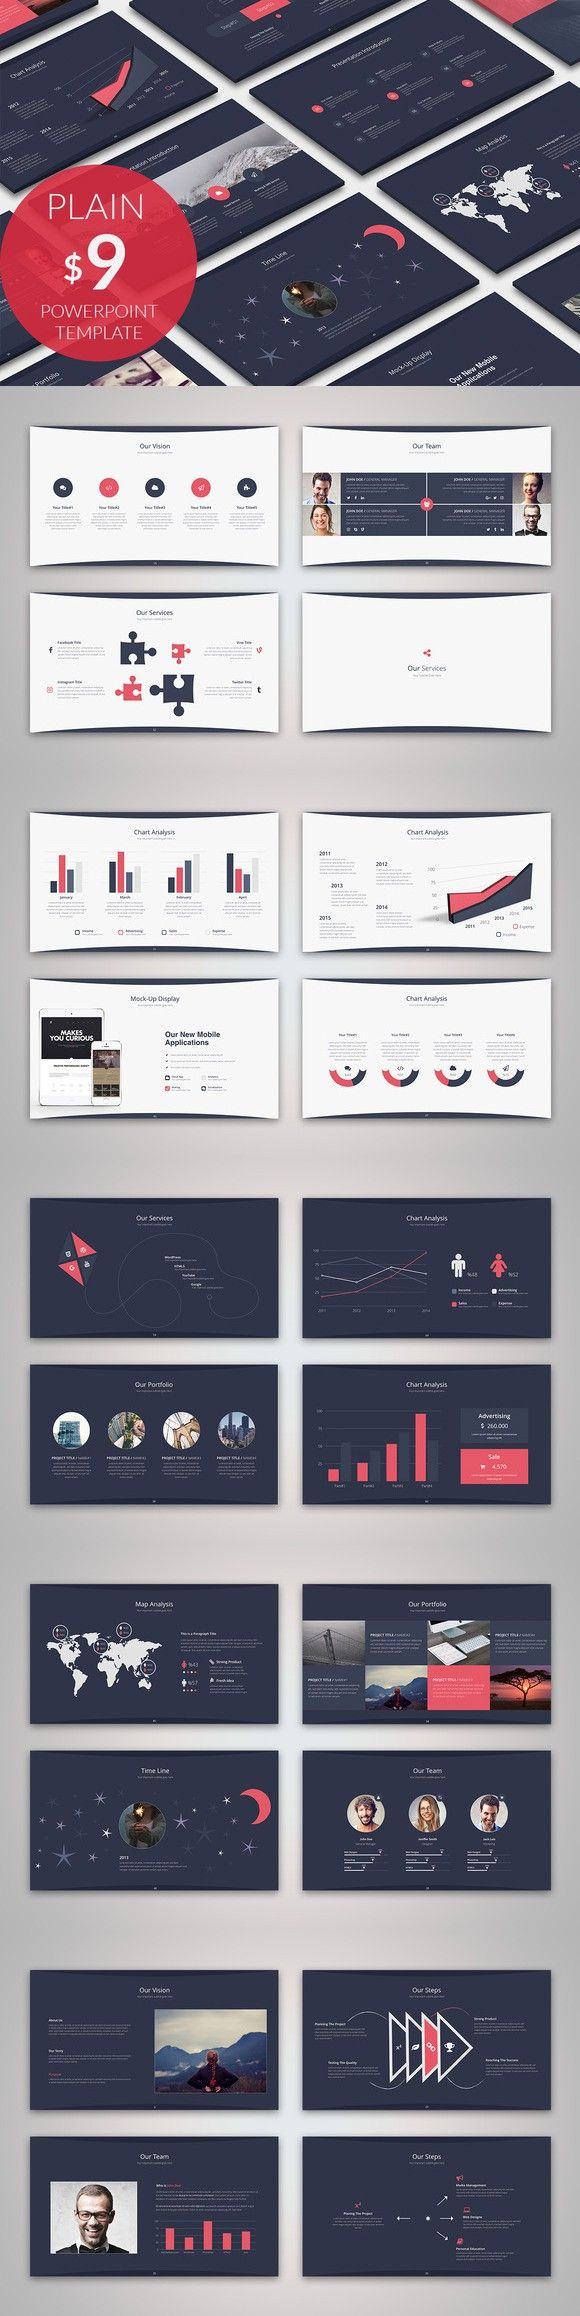 Plain Business Powerpoint Template. PowerPoint Templates. $9.00